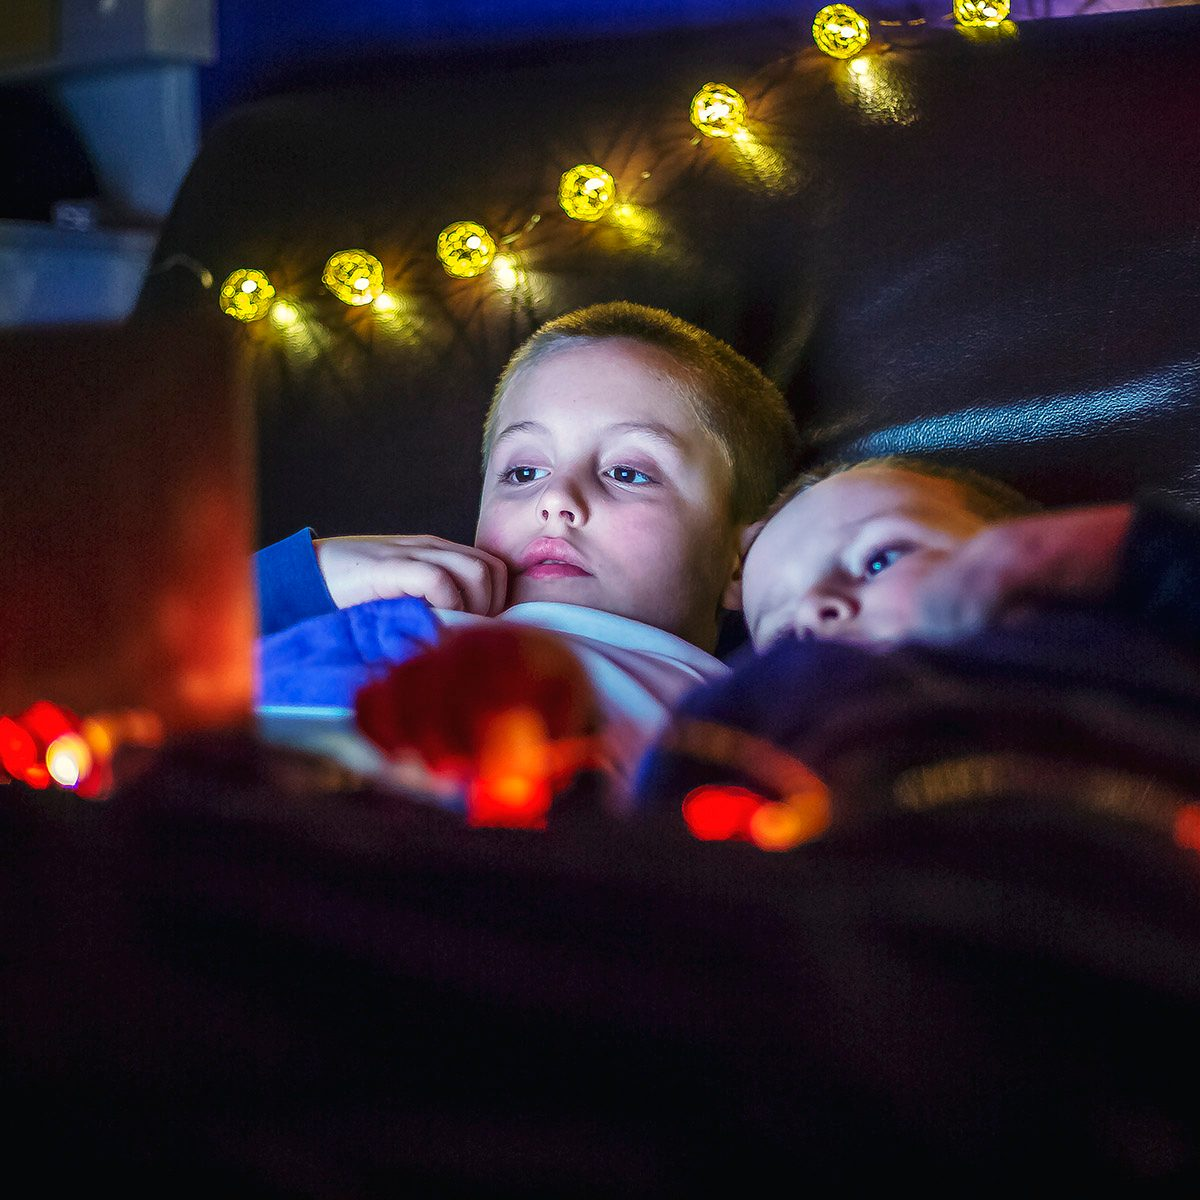 Two boys, brothers, watch movie on a laptop